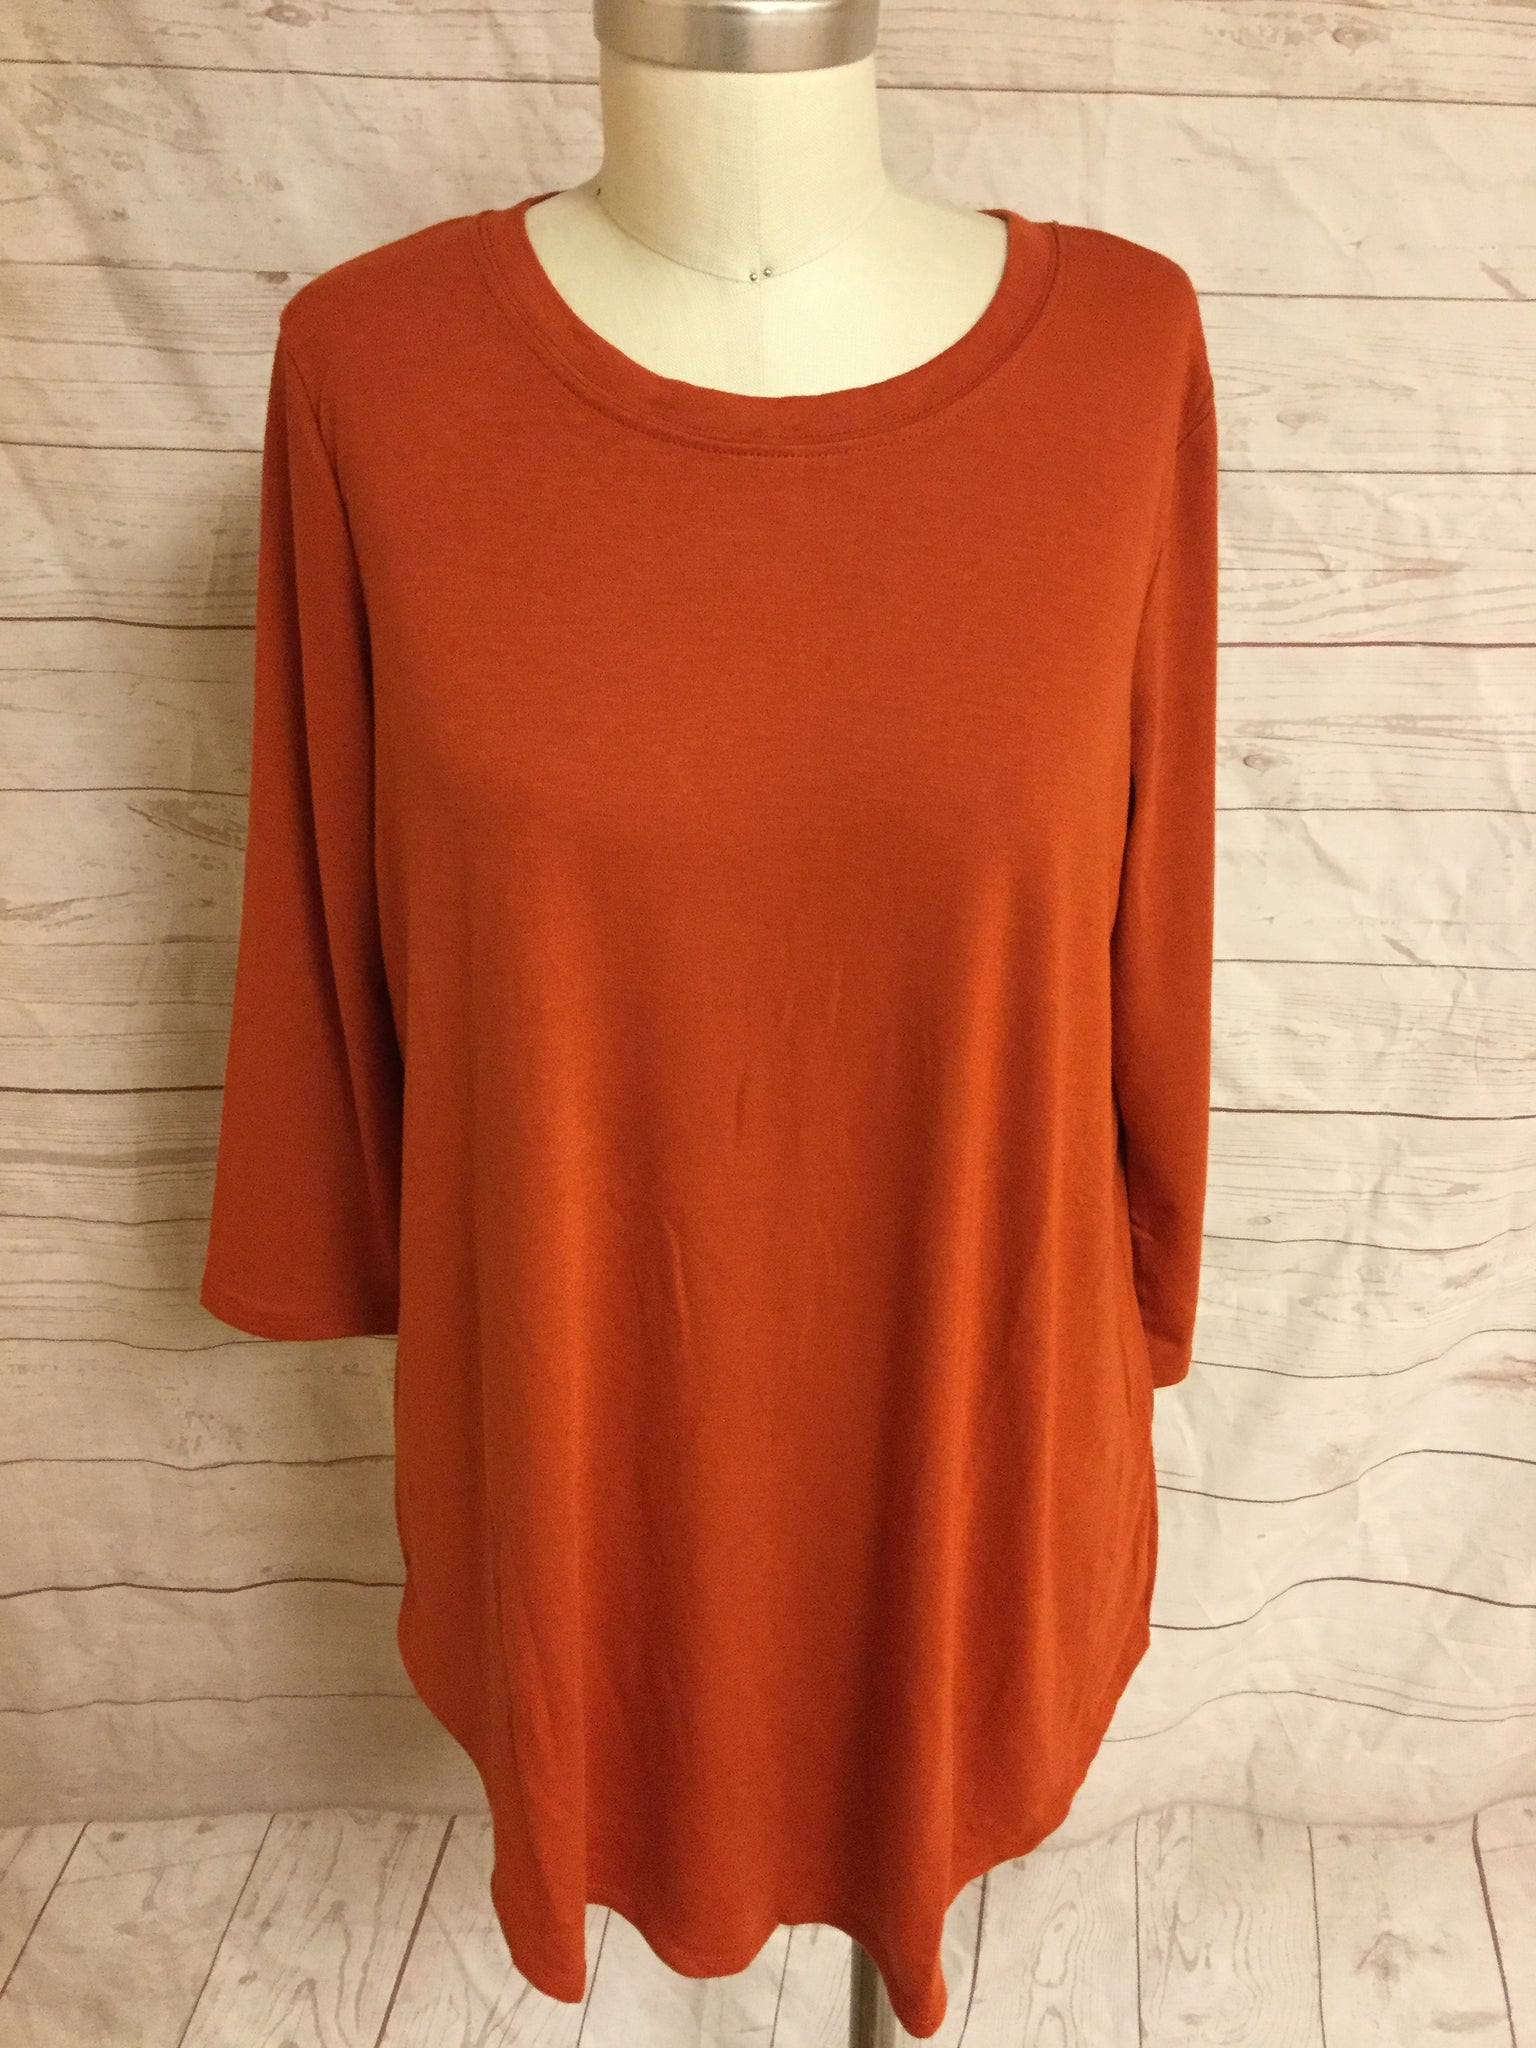 Classic 3/4 Sleeve Top